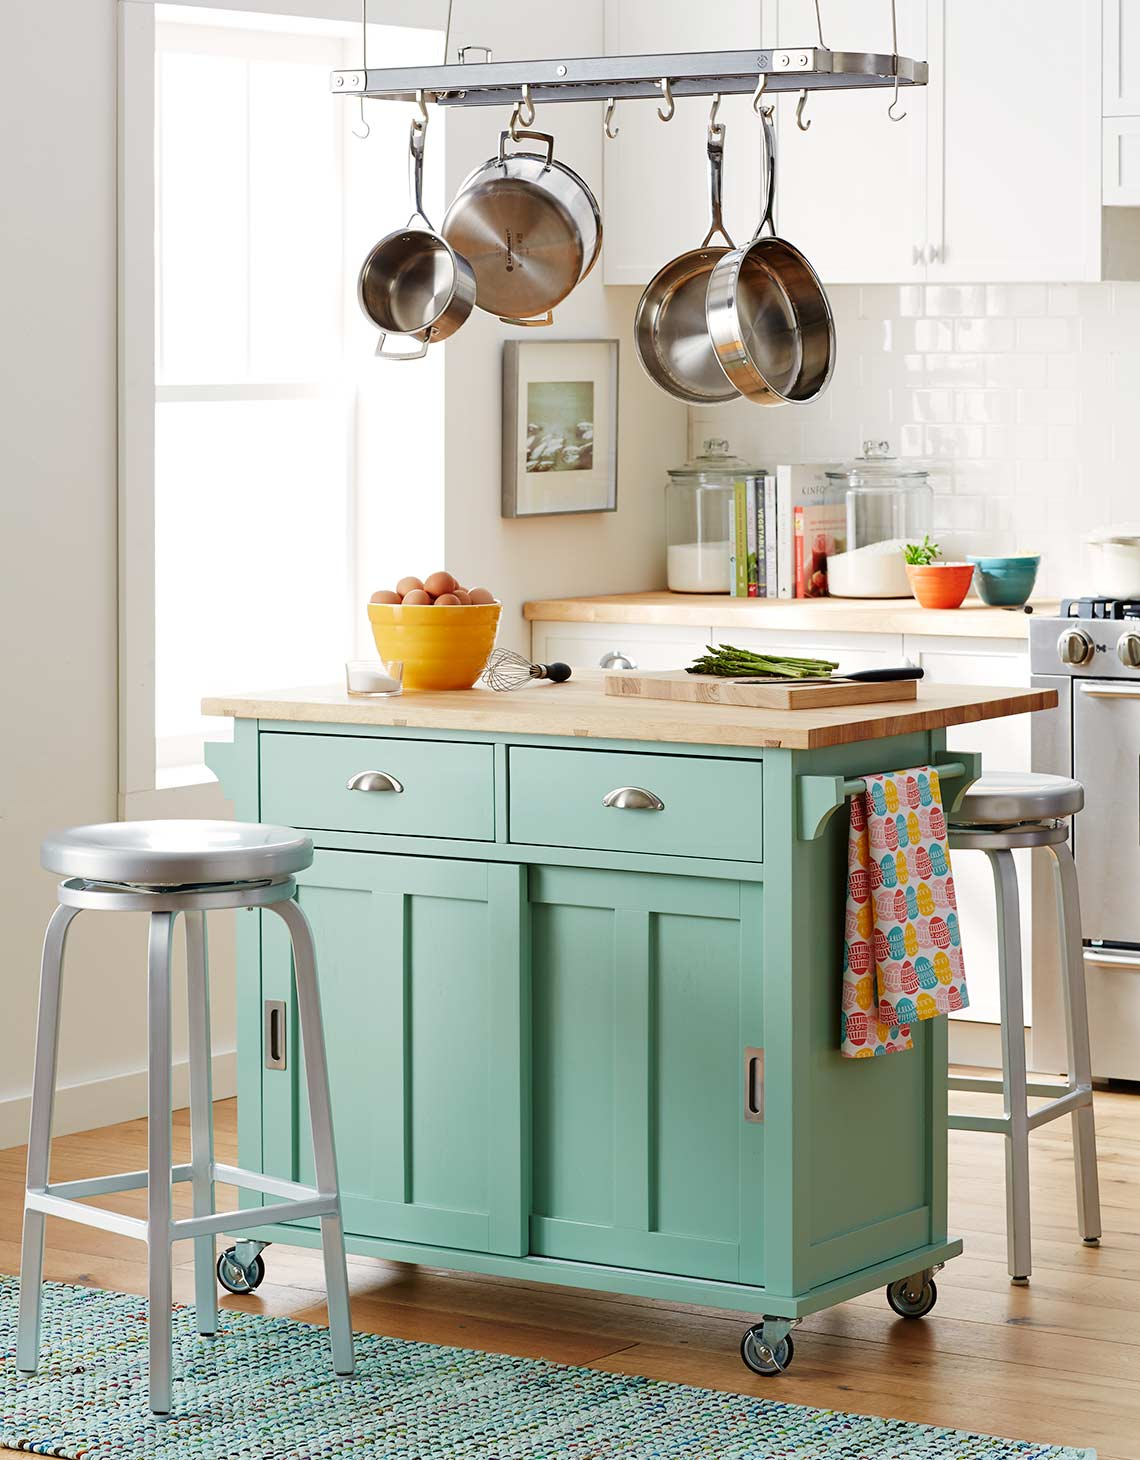 Crate and Barrel catalog kitchen island